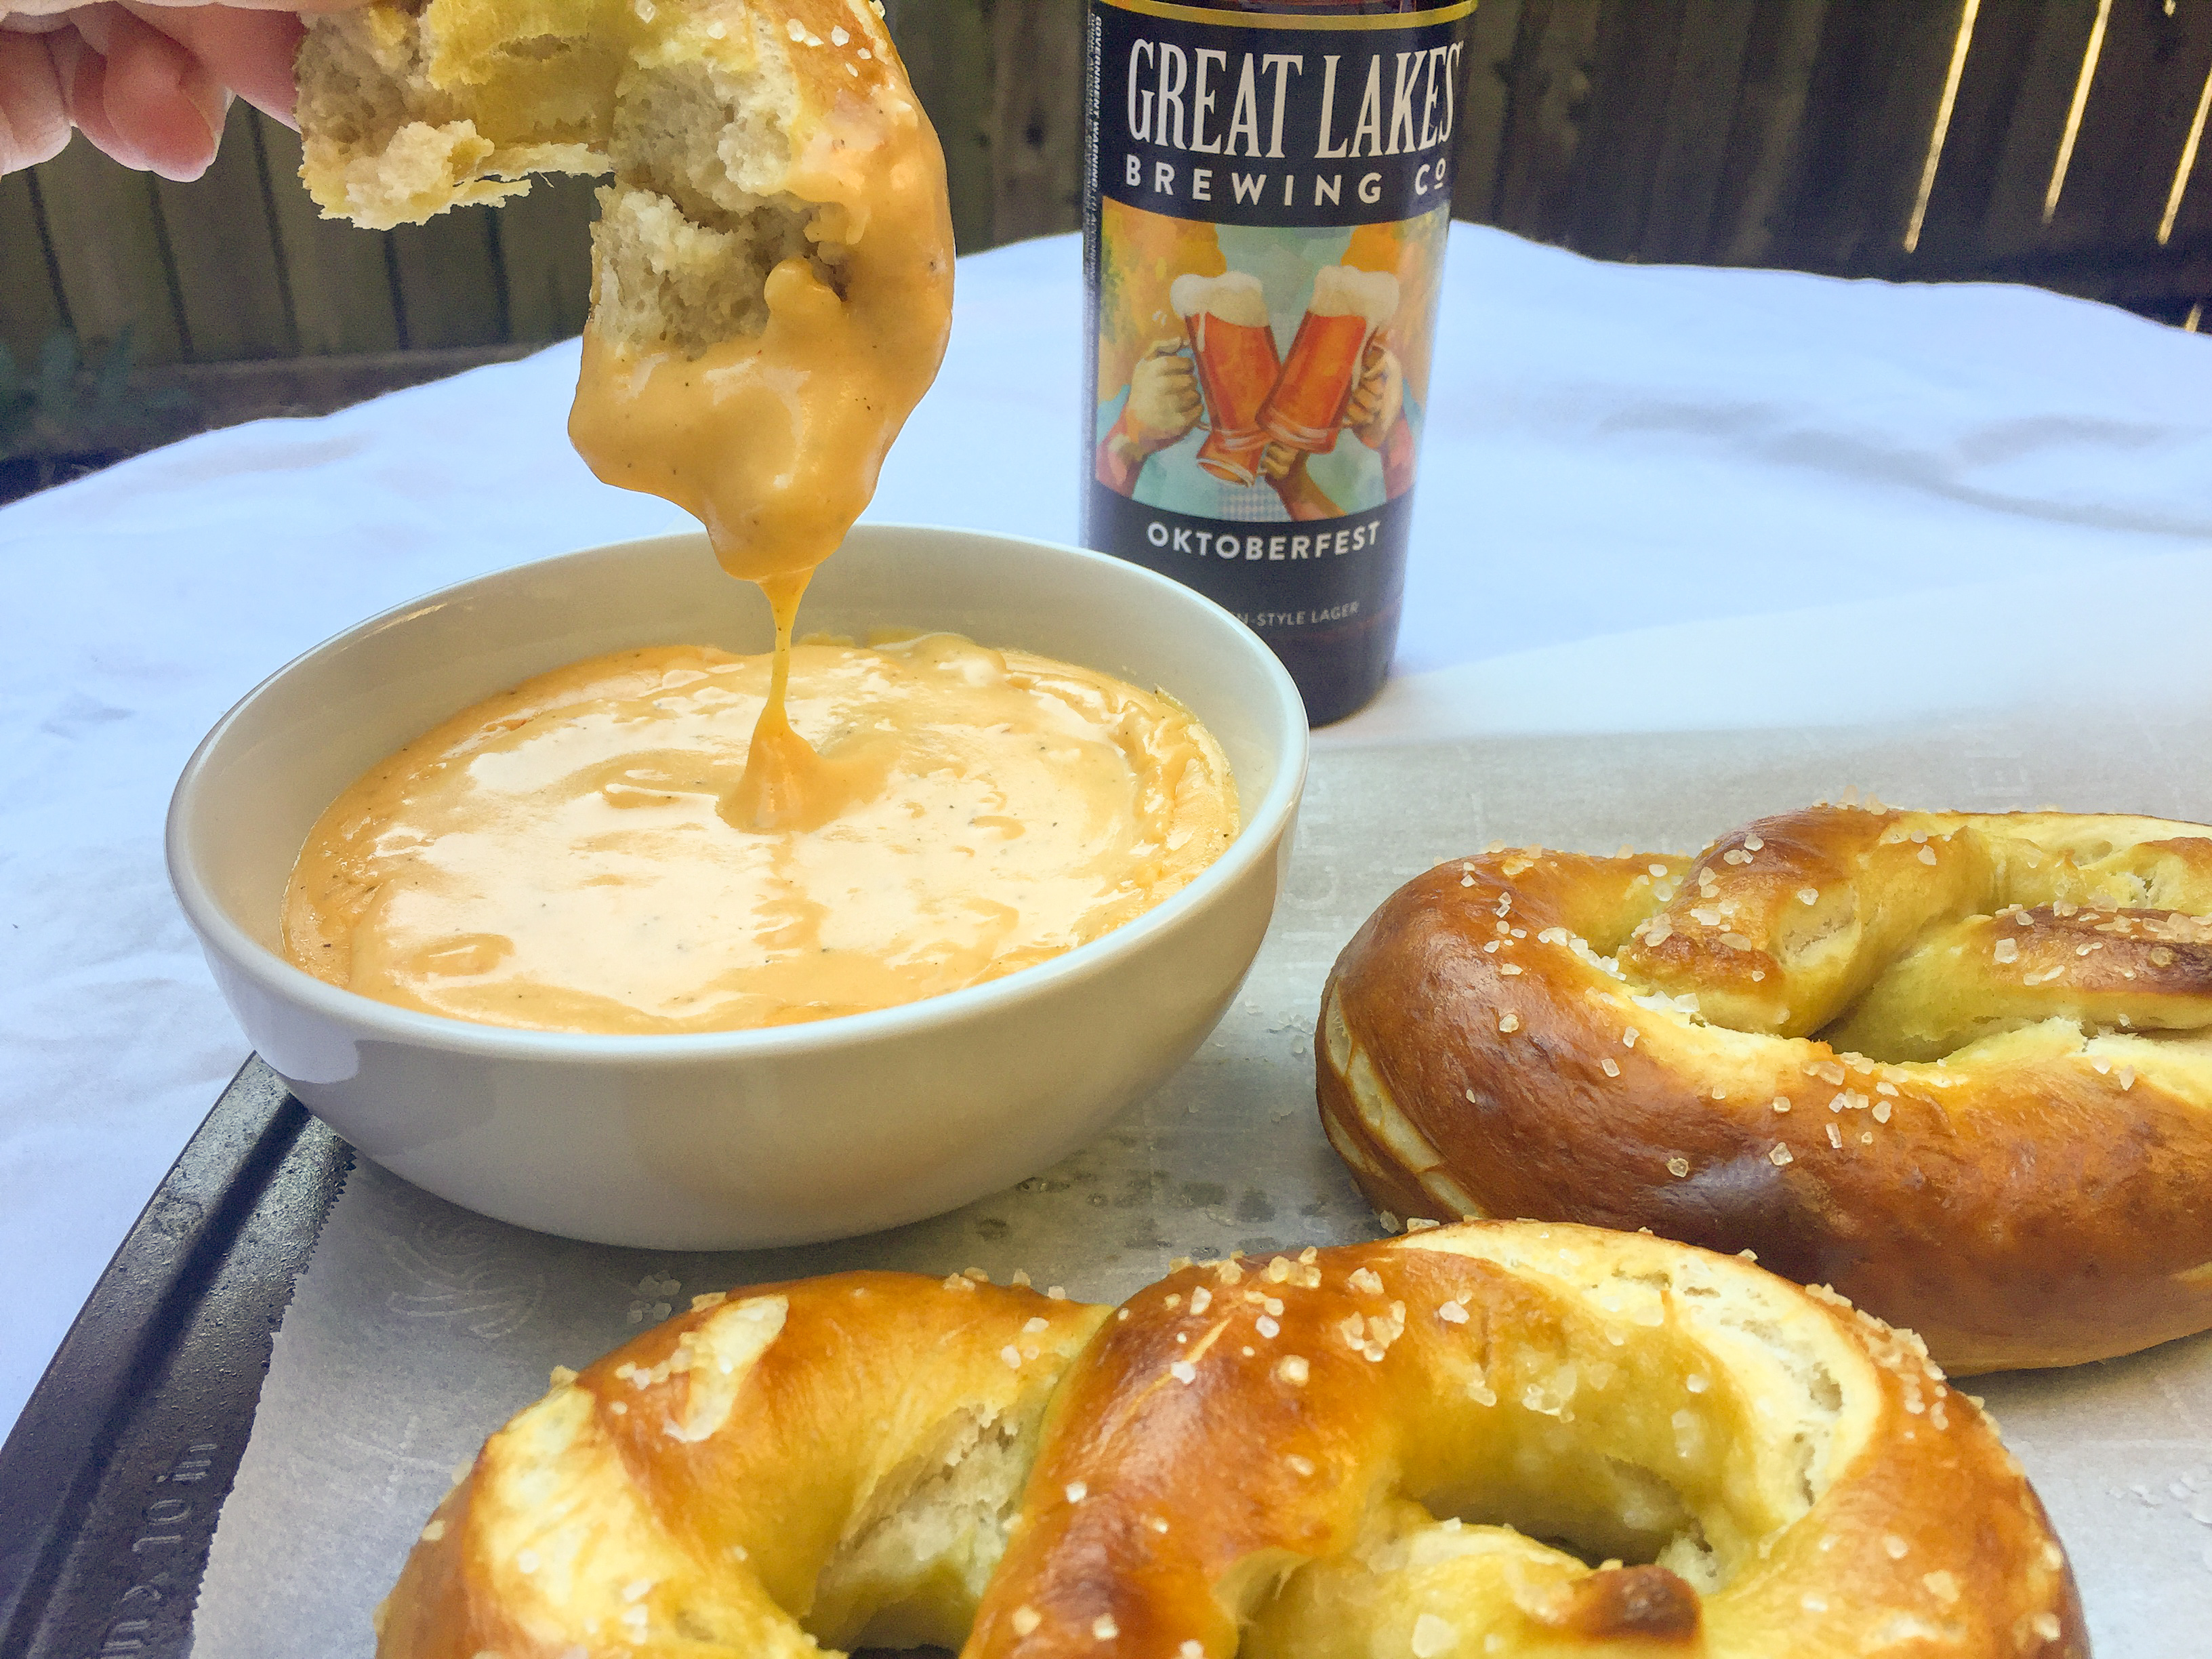 Giant Soft Pretzels with Beer Cheese